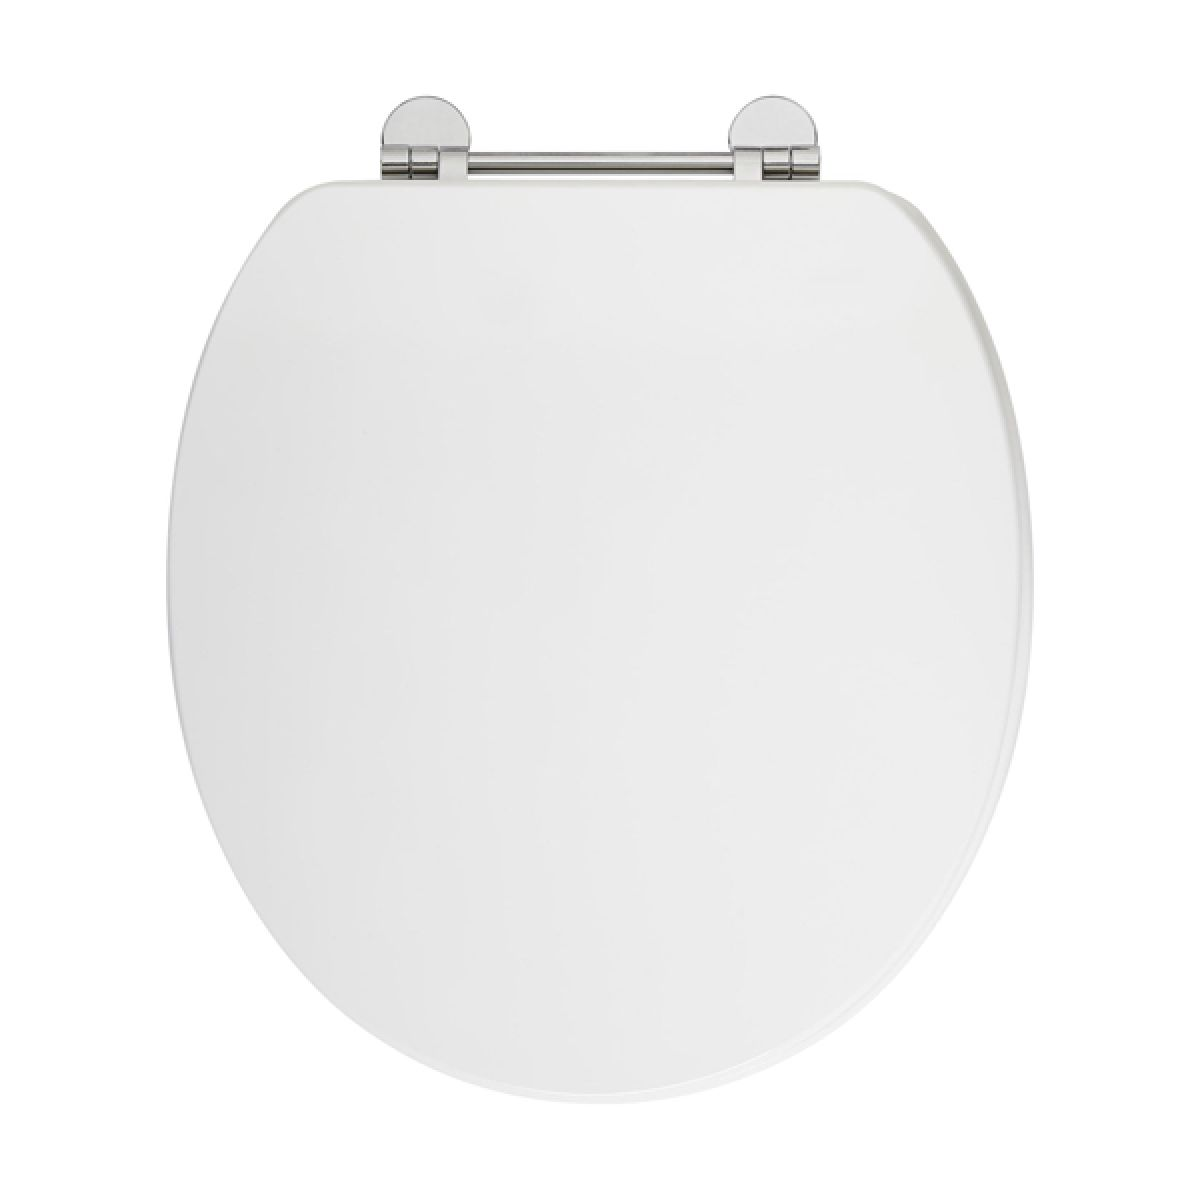 Frontline Gloss White Wooden Toilet Seat with Chrome Fittings